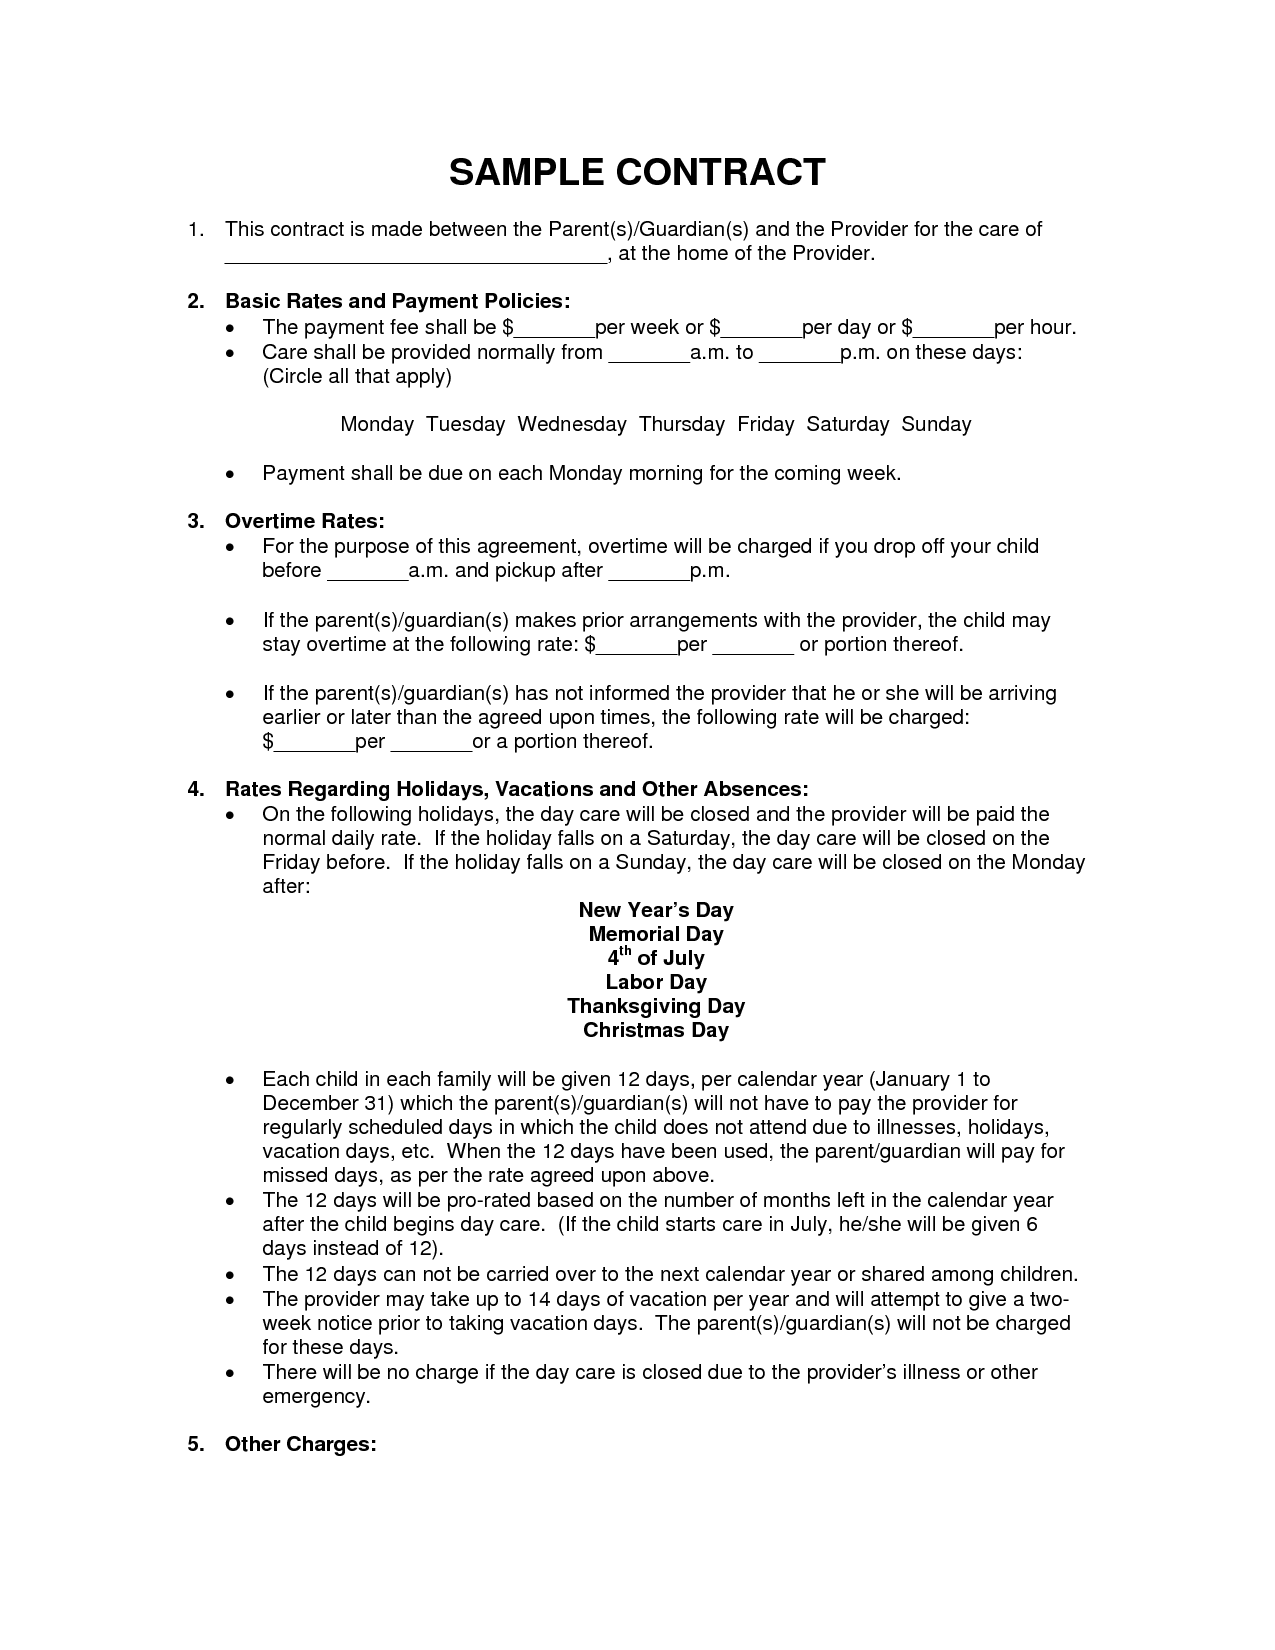 scope of work template | Daycare | Pinterest | Template, Daycare ...